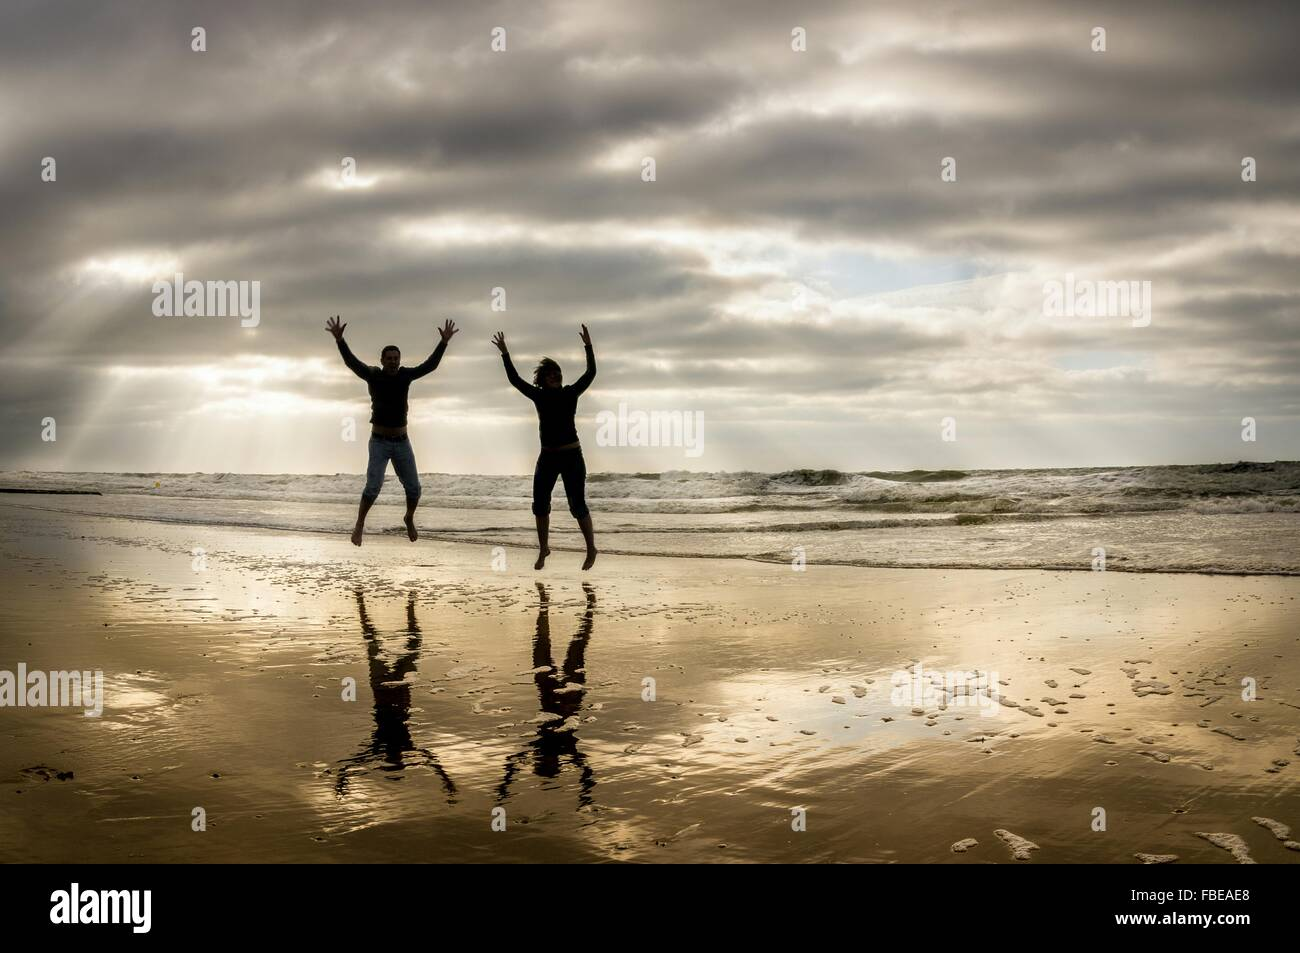 Silhouette Man And Woman With Arms Raised Jumping At Beach - Stock Image